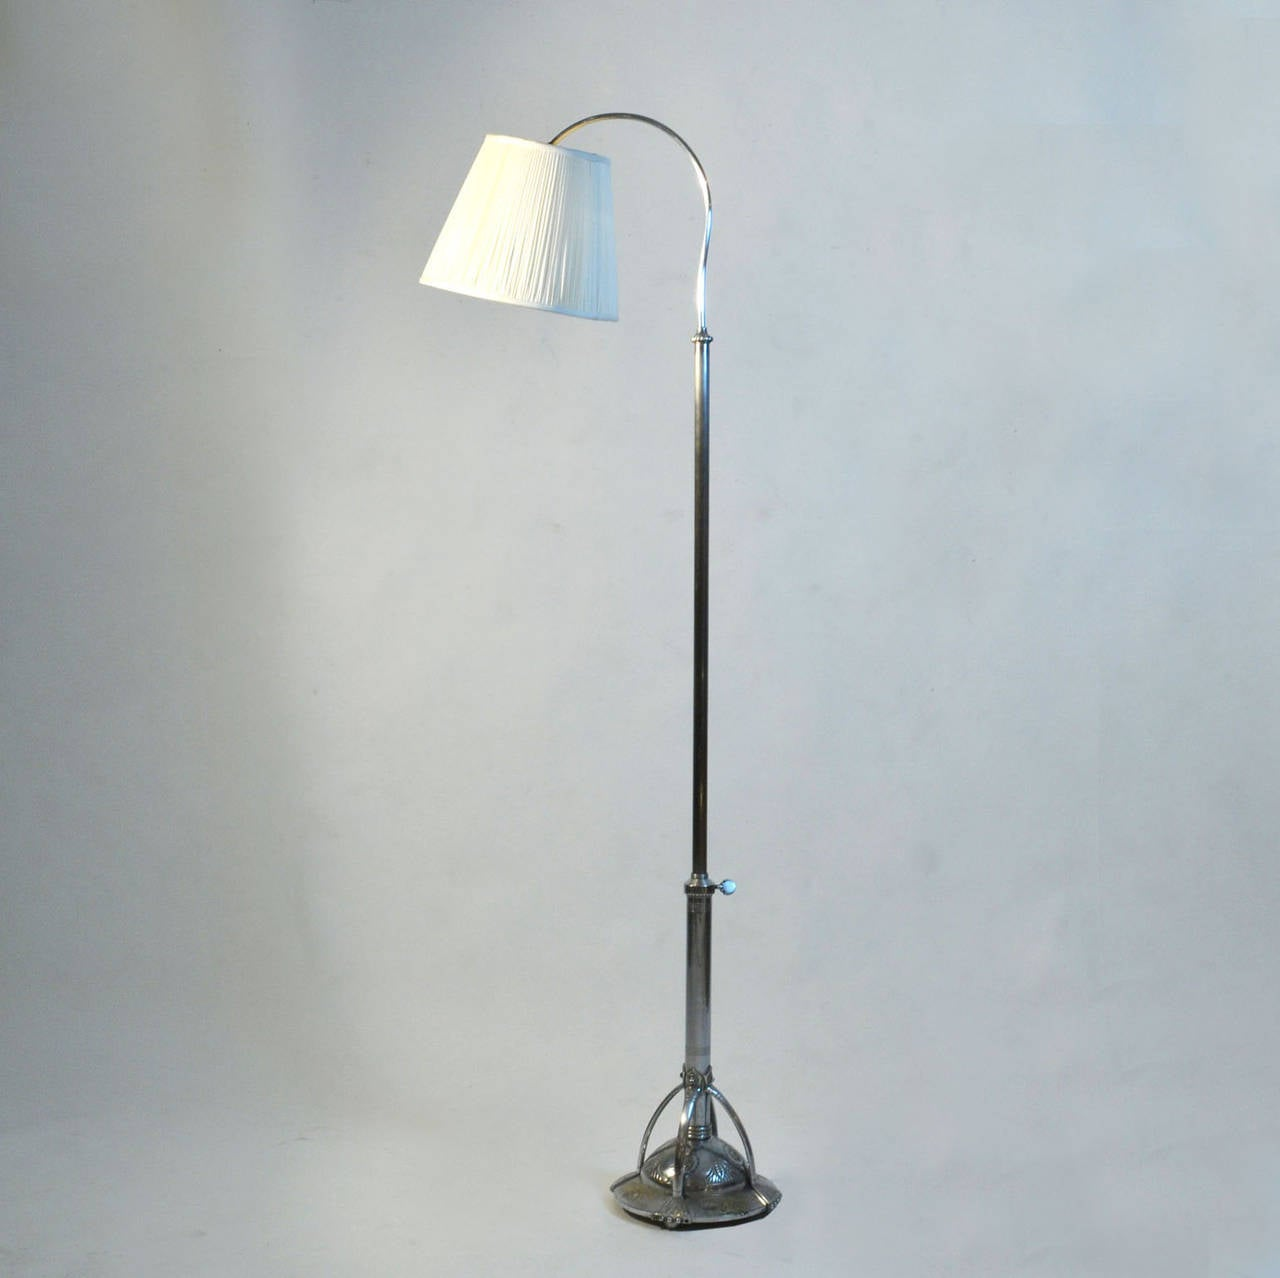 Rare Art Deco Floor Lamp For Sale At 1stdibs